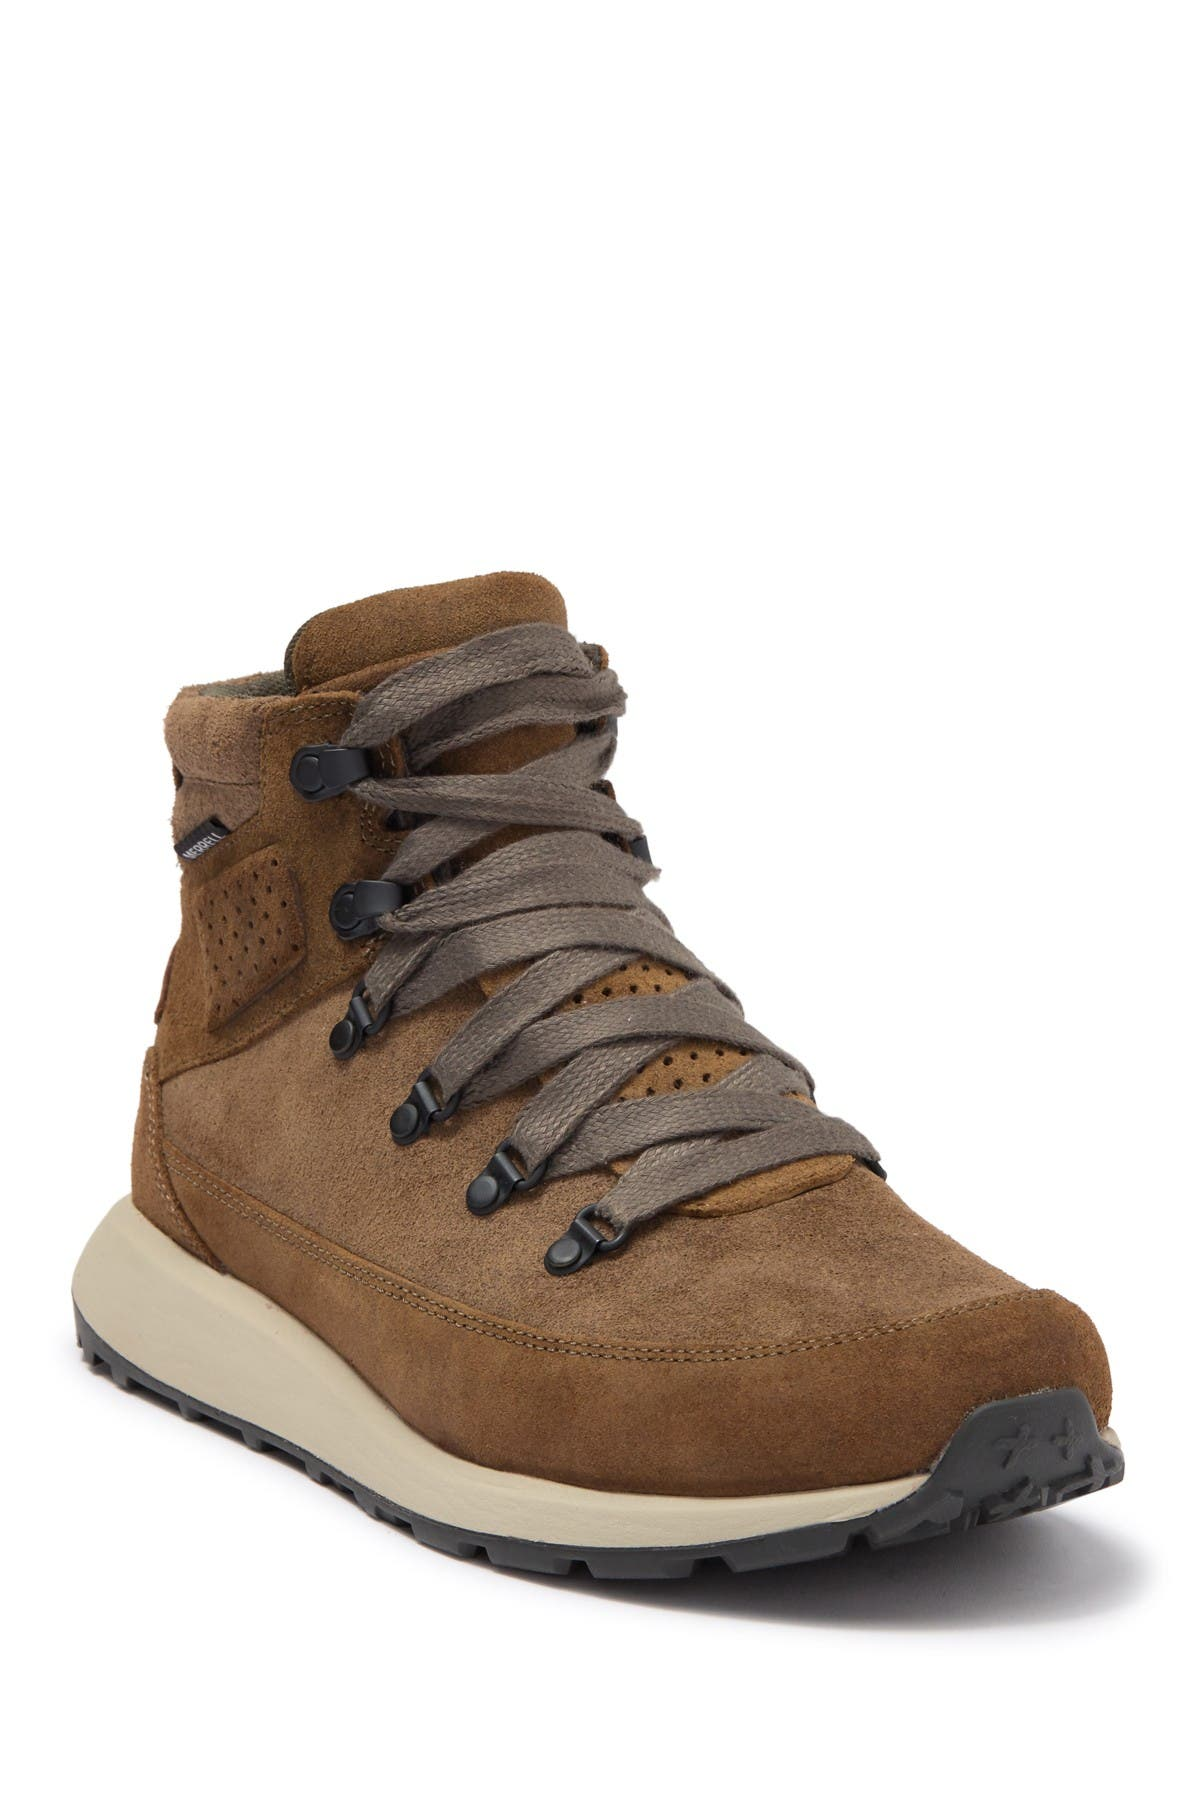 Image of Merrell Ashford Classic Suede Chukka LTR Boot